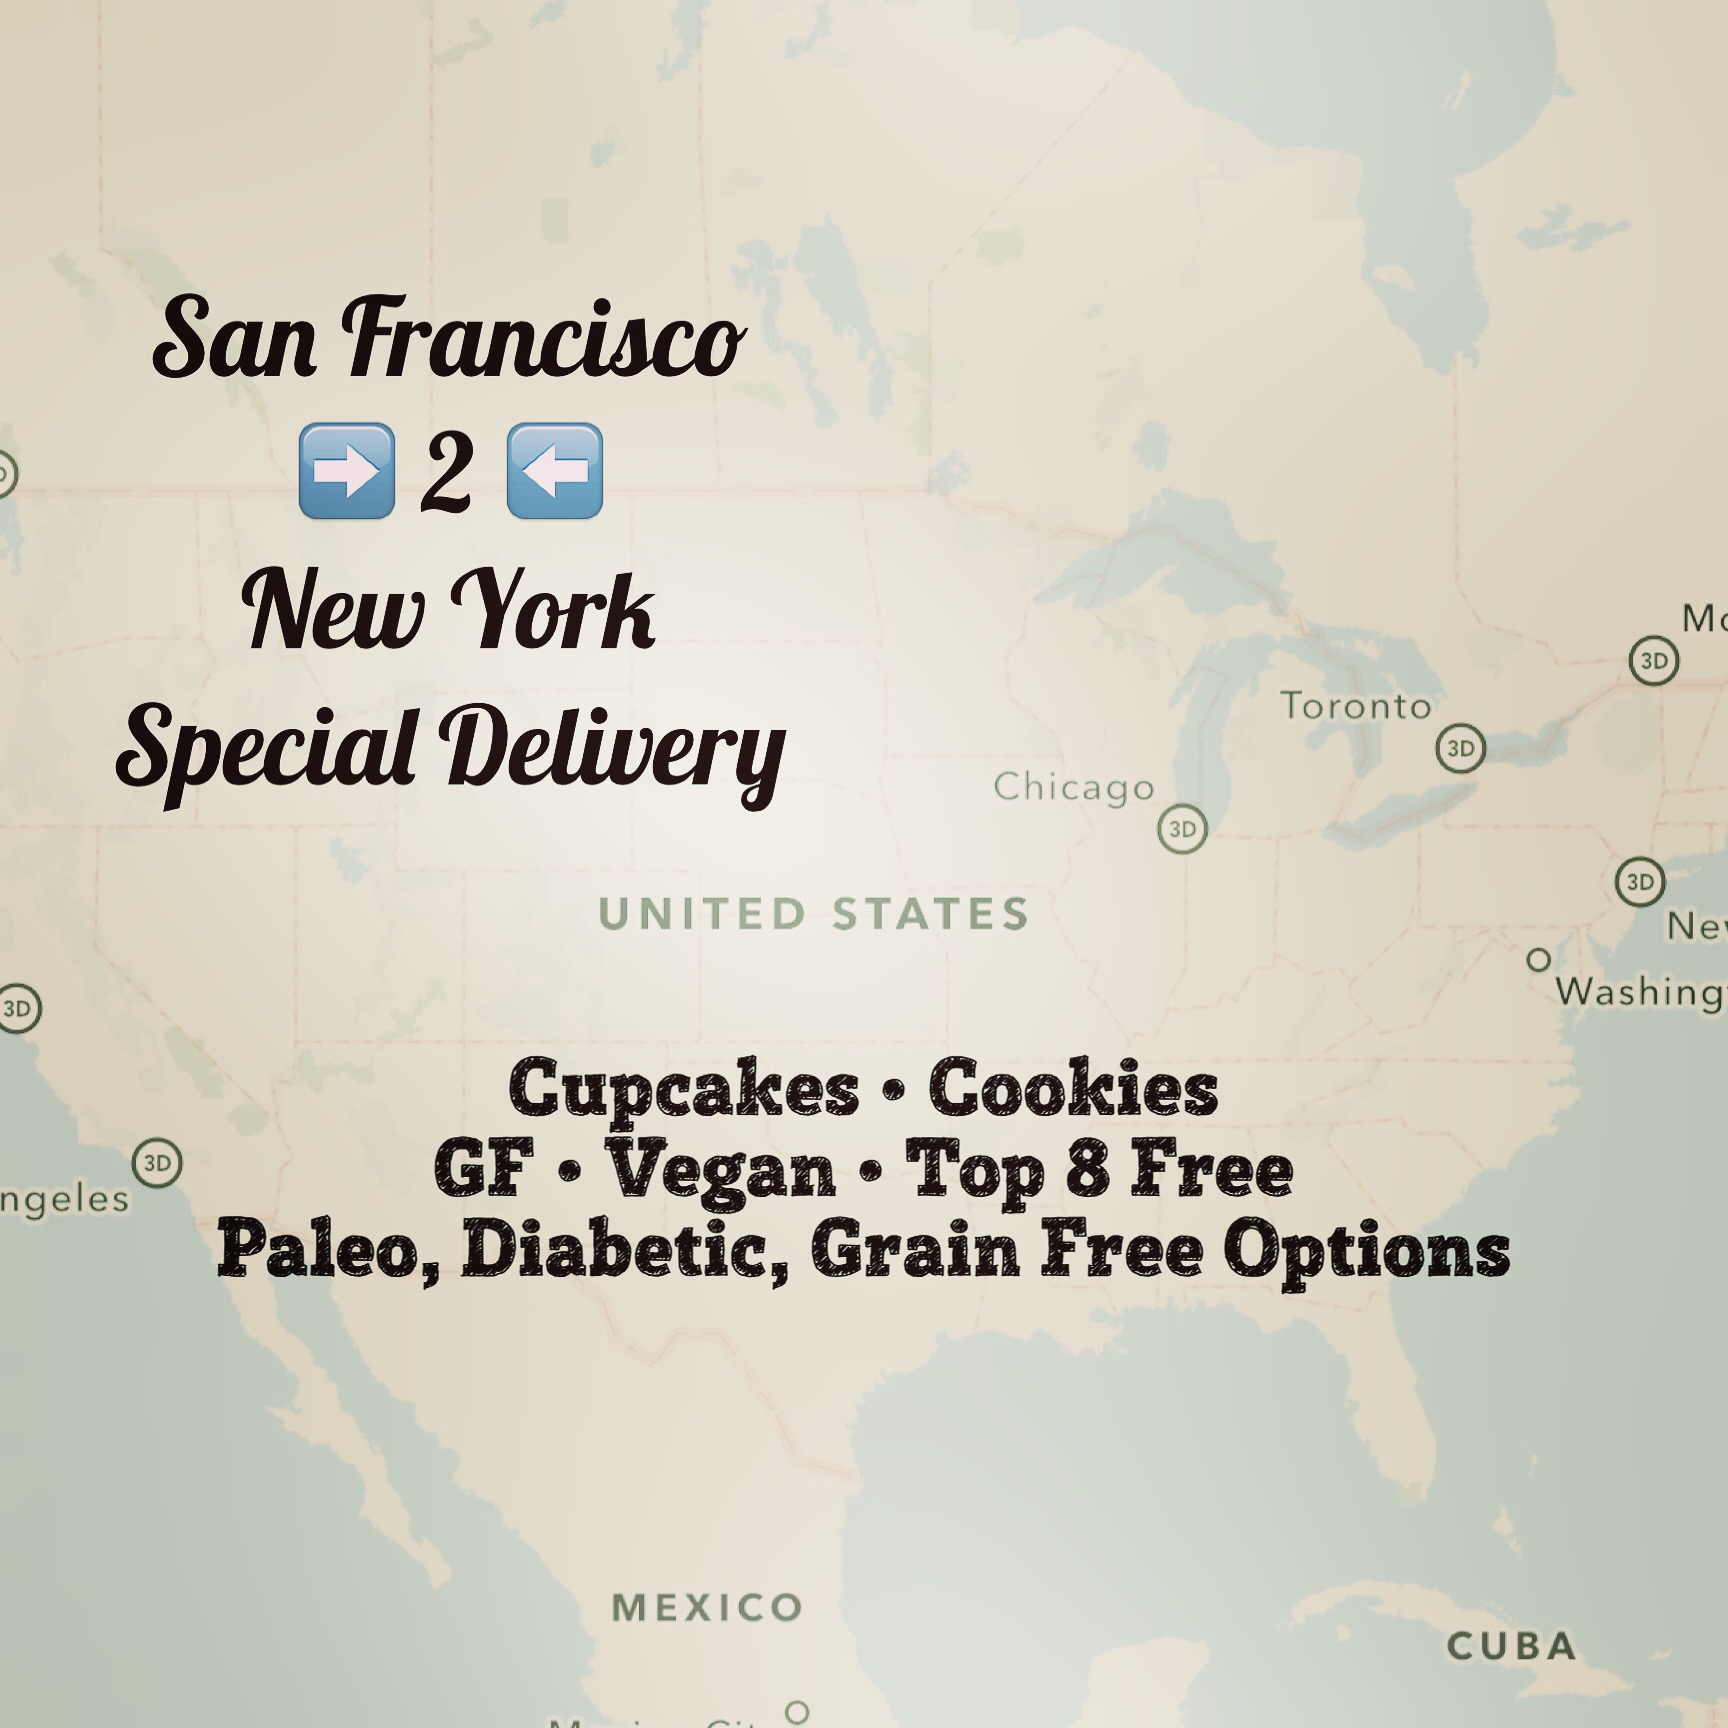 San Francisco to New York Delivery